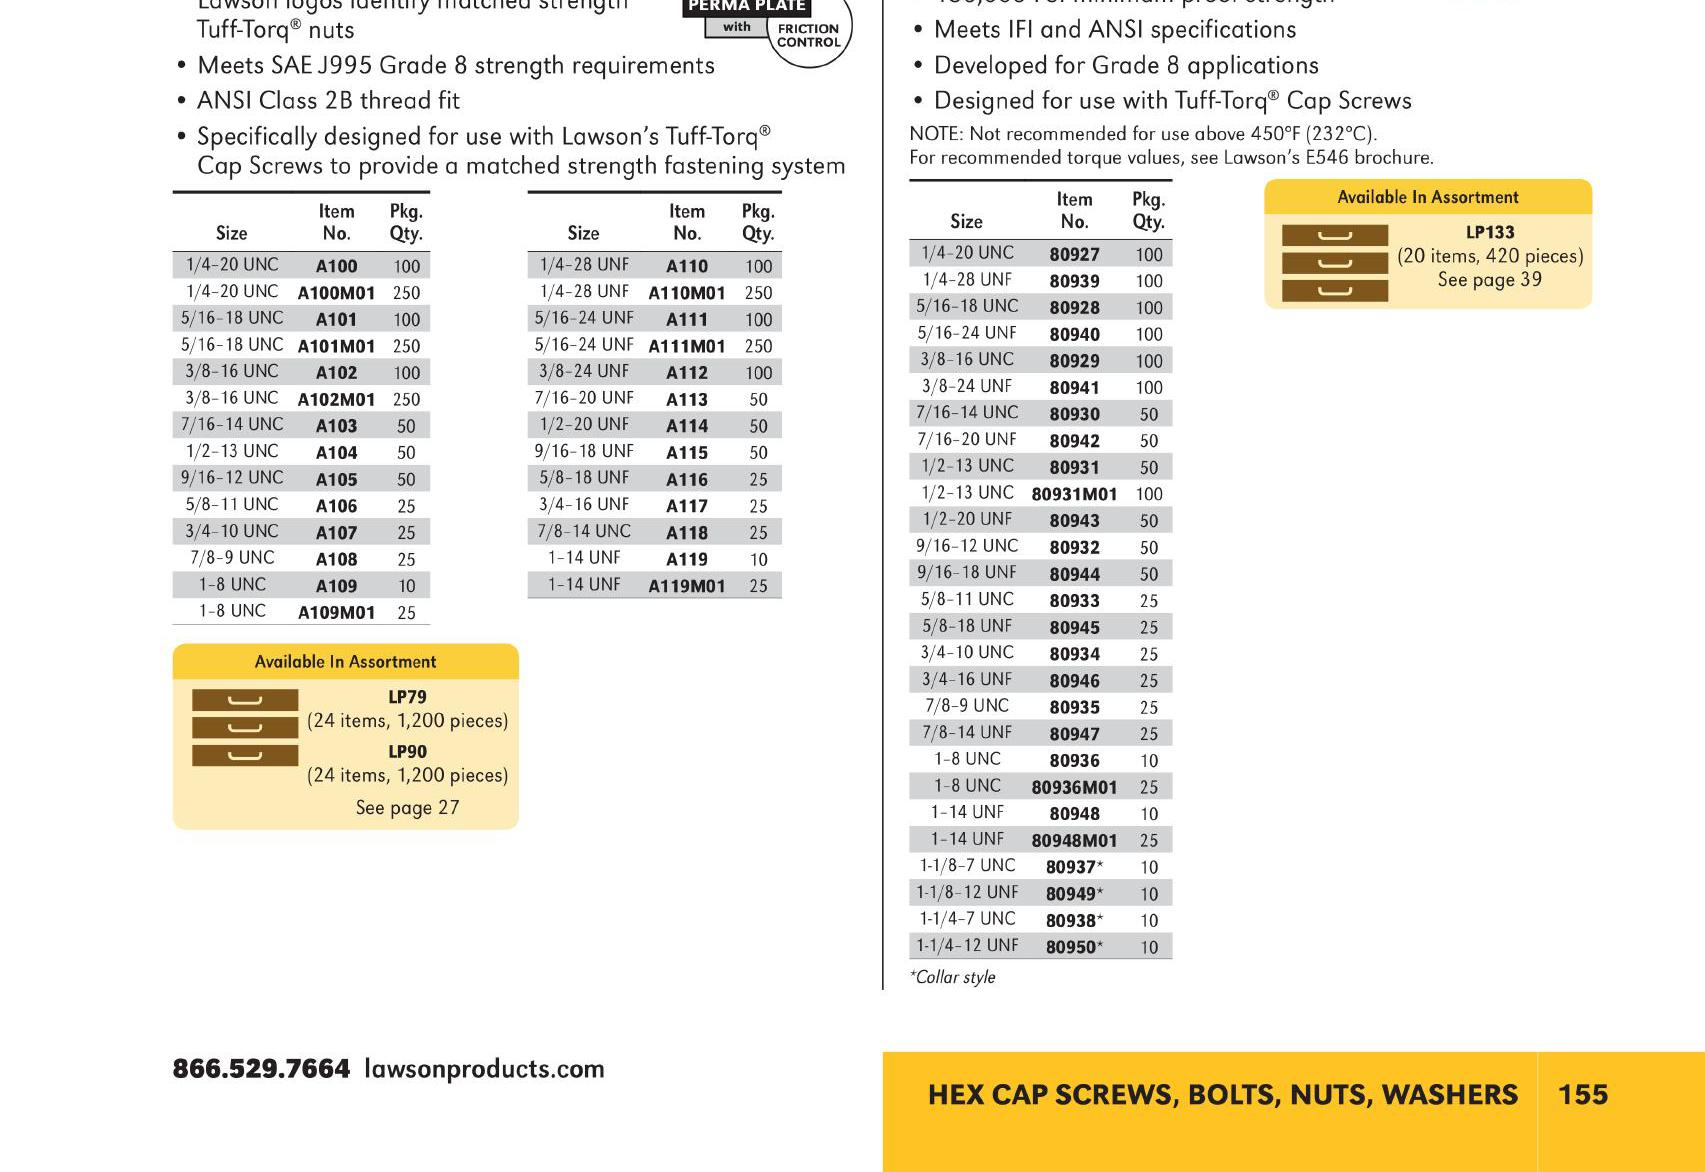 Lawson Products Catalog US 2015 Page 155 - Hex Cap Screws